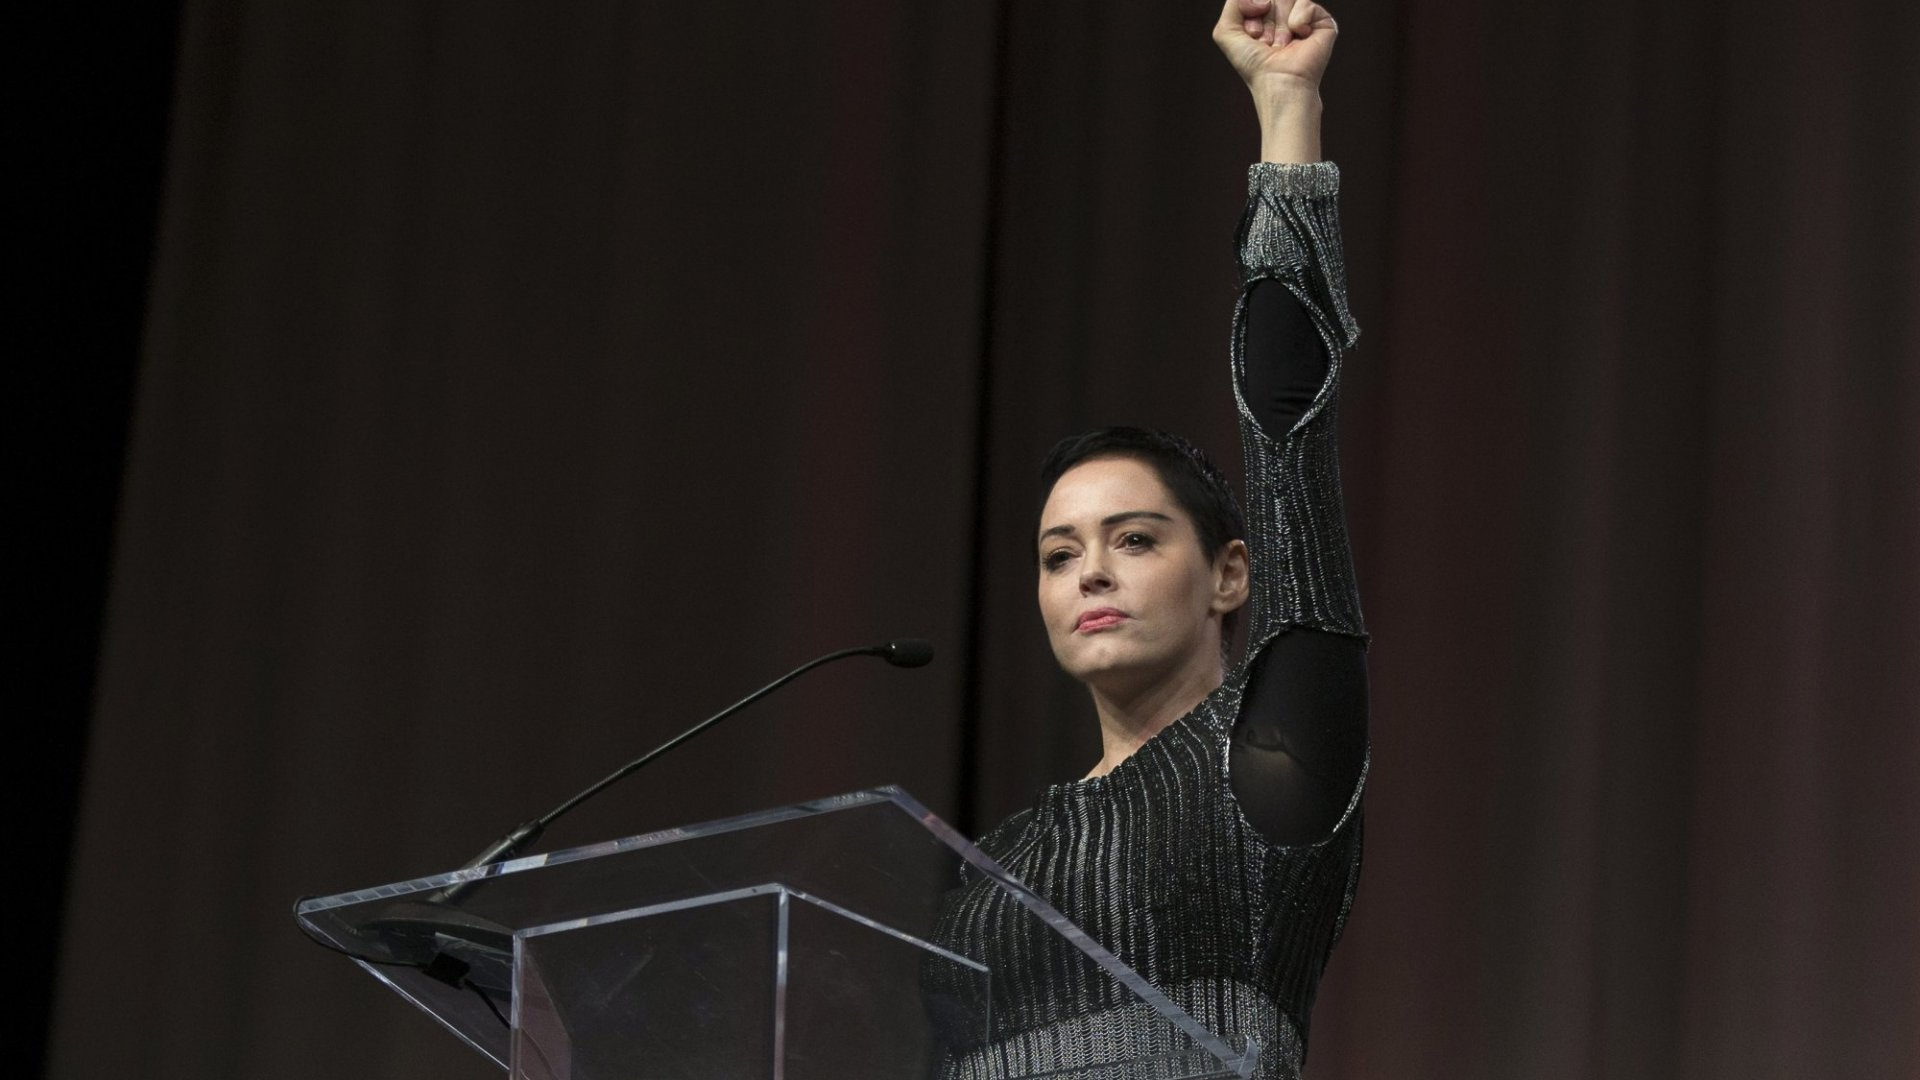 4 Reasons Rose McGowan Should Be the Leadership Model for Your Organization